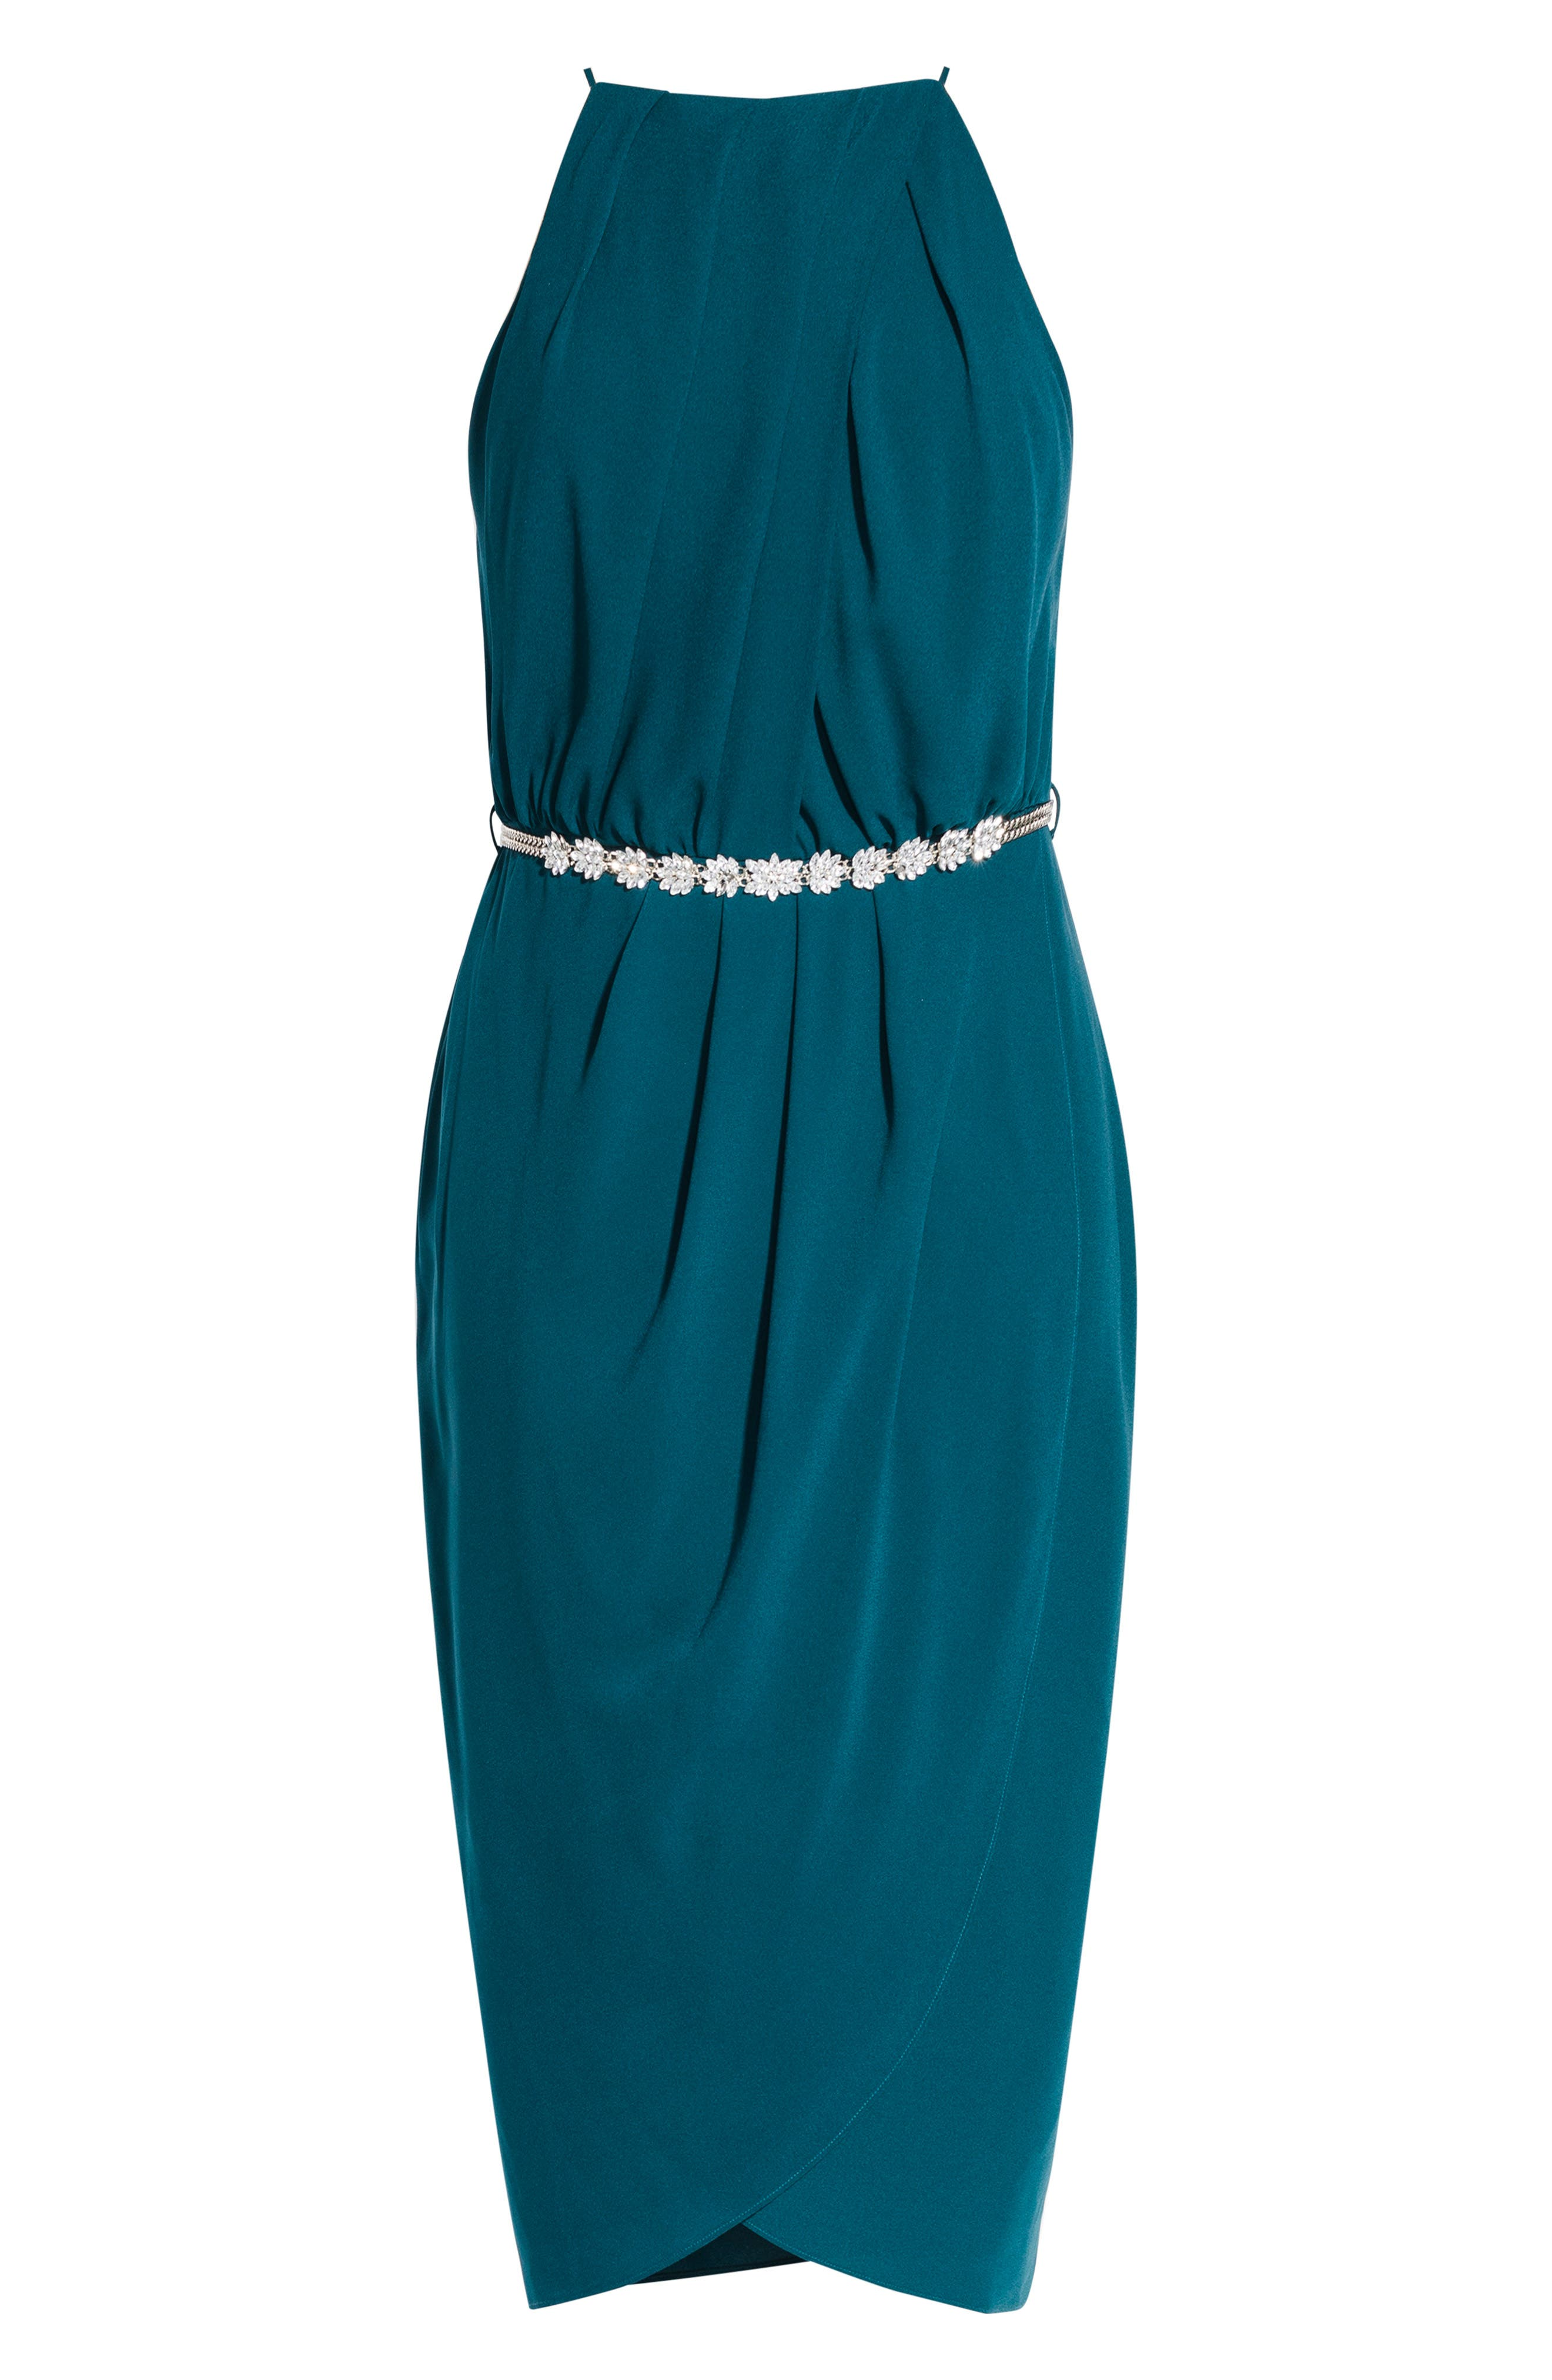 CITY CHIC,                             In Love Faux Wrap Dress,                             Alternate thumbnail 3, color,                             EMERALD